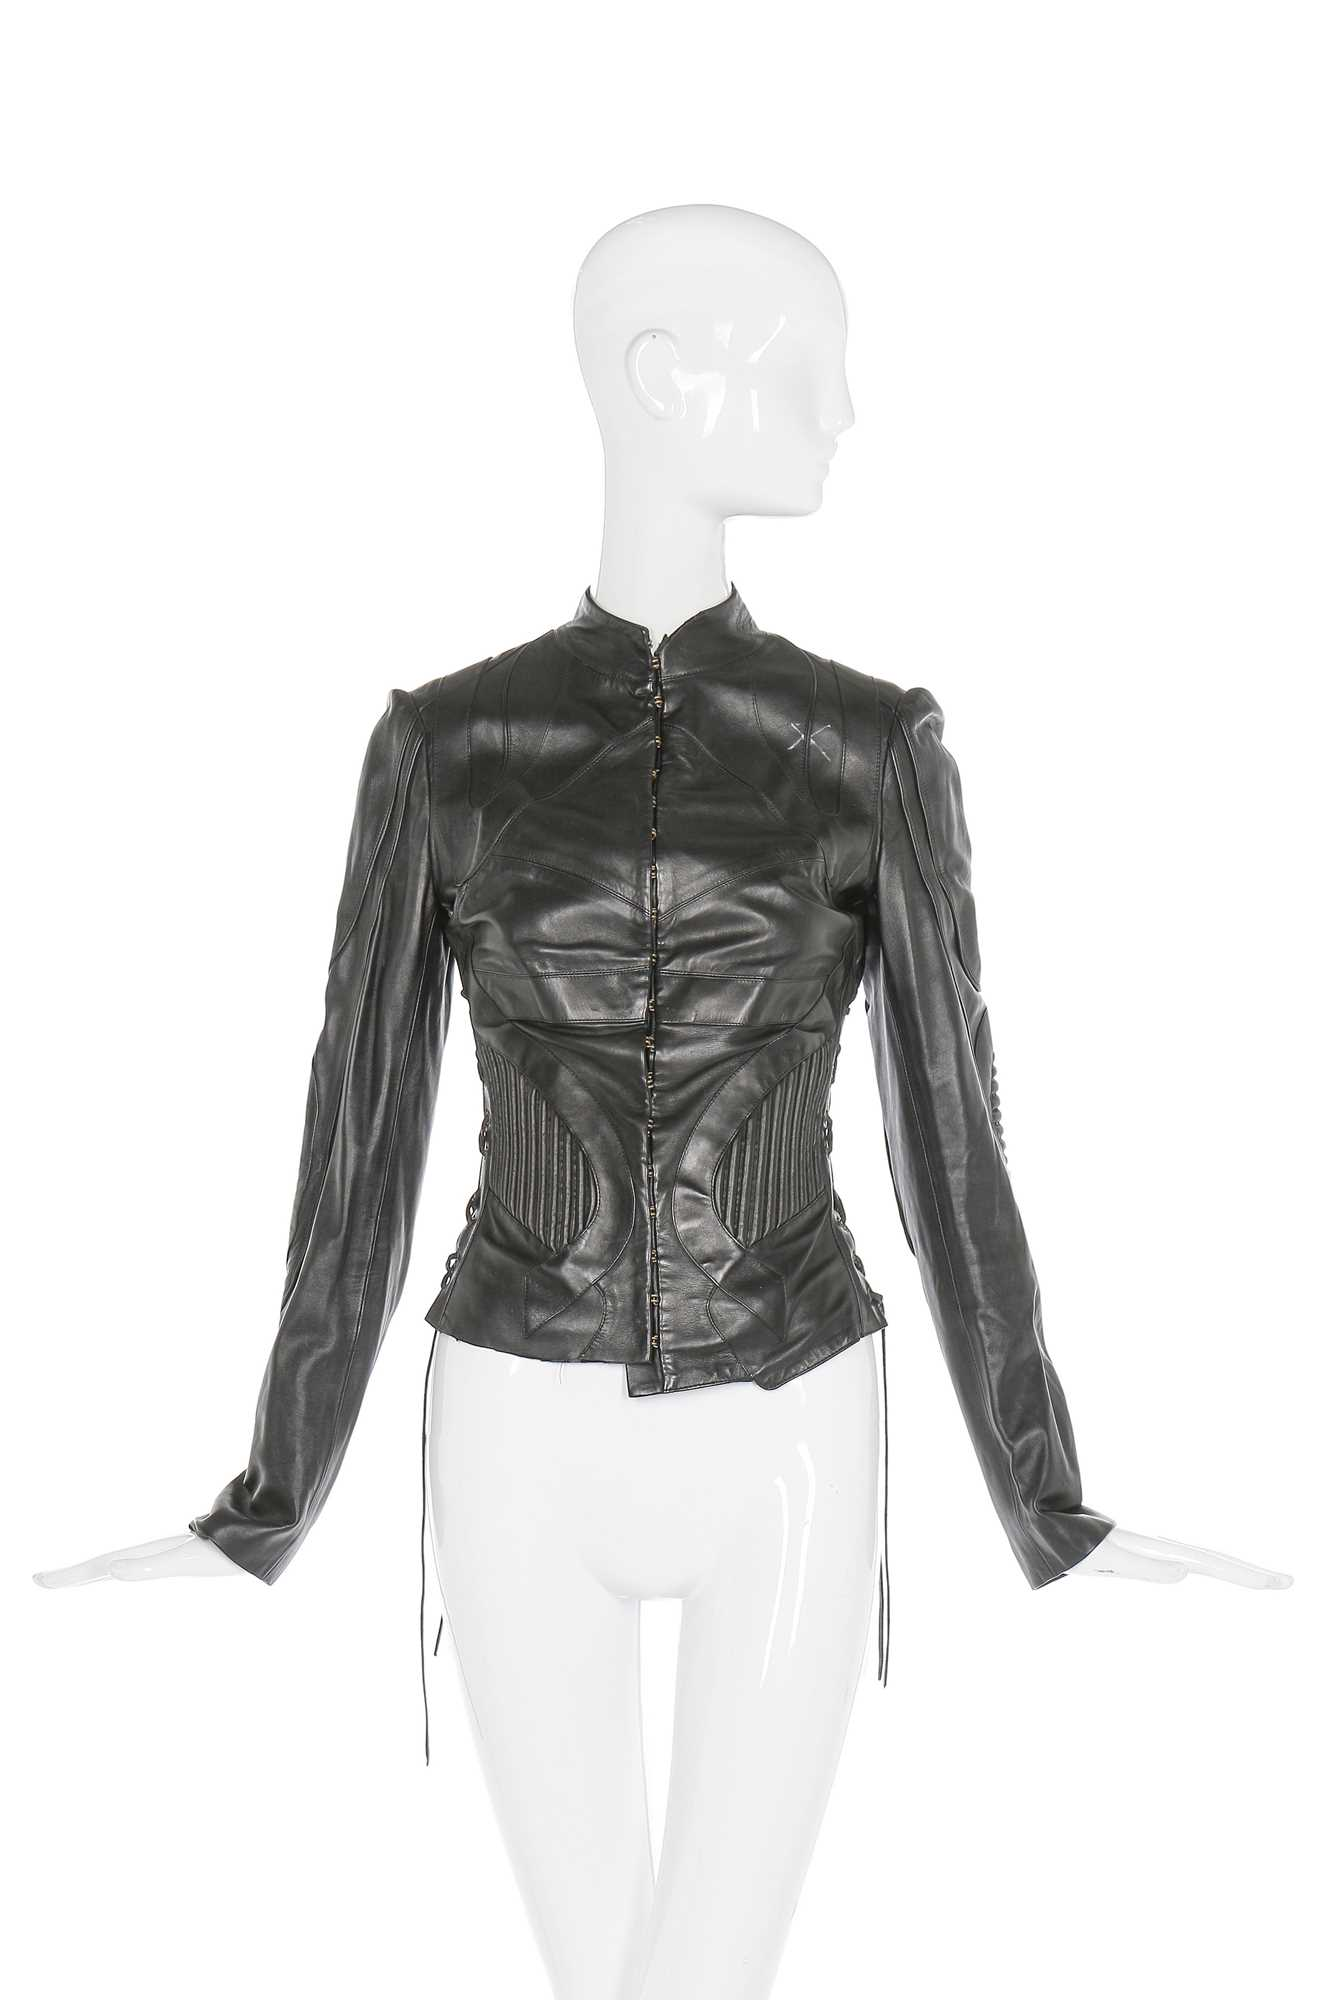 Lot 25-Alexander McQueen panelled black leather jacket, 'Scanners', Autumn-Winter 2003-04